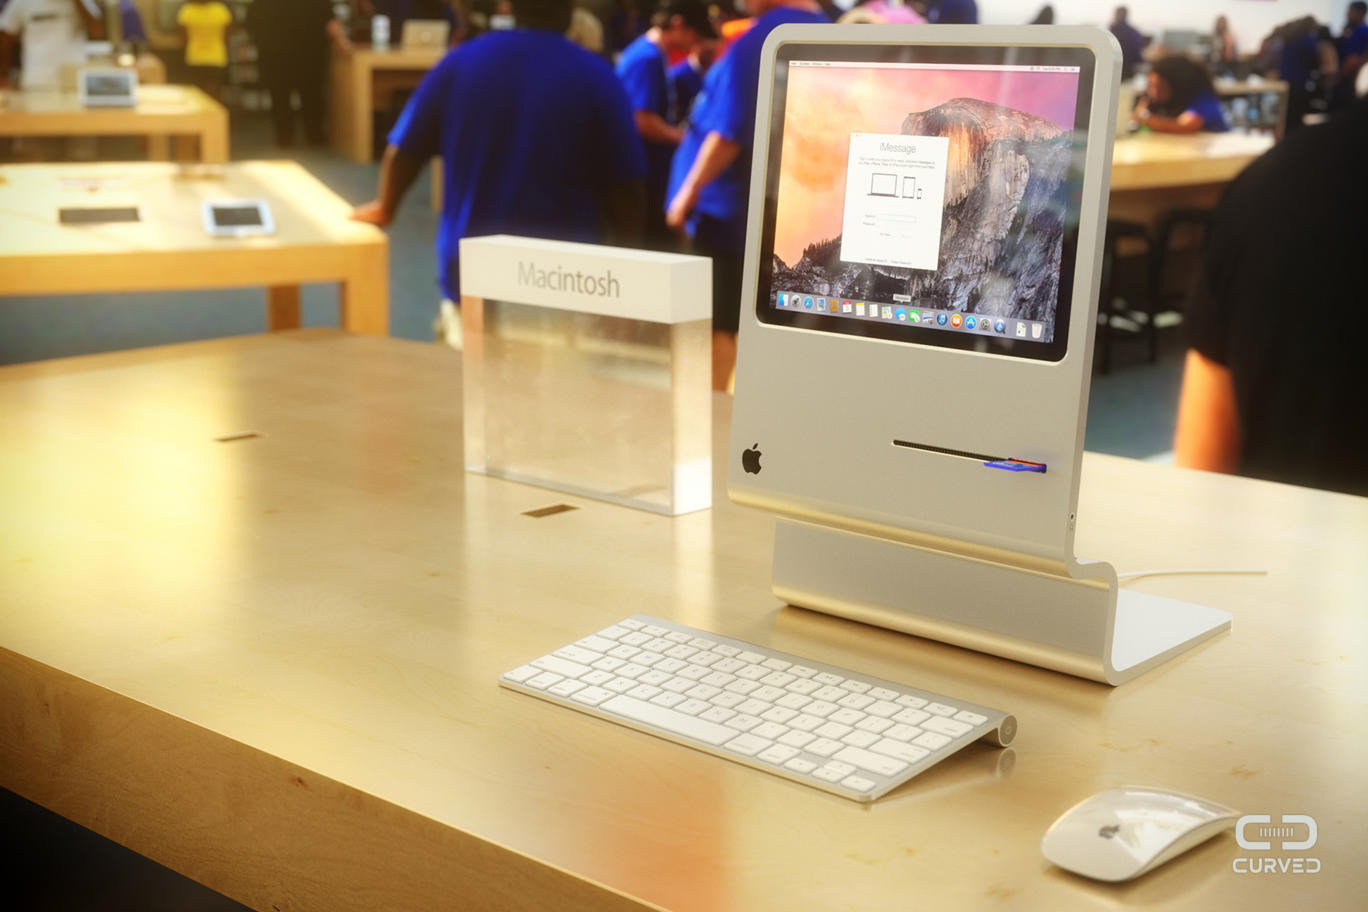 Concept Images Take Original Macintosh to Modern Minimalist Extreme